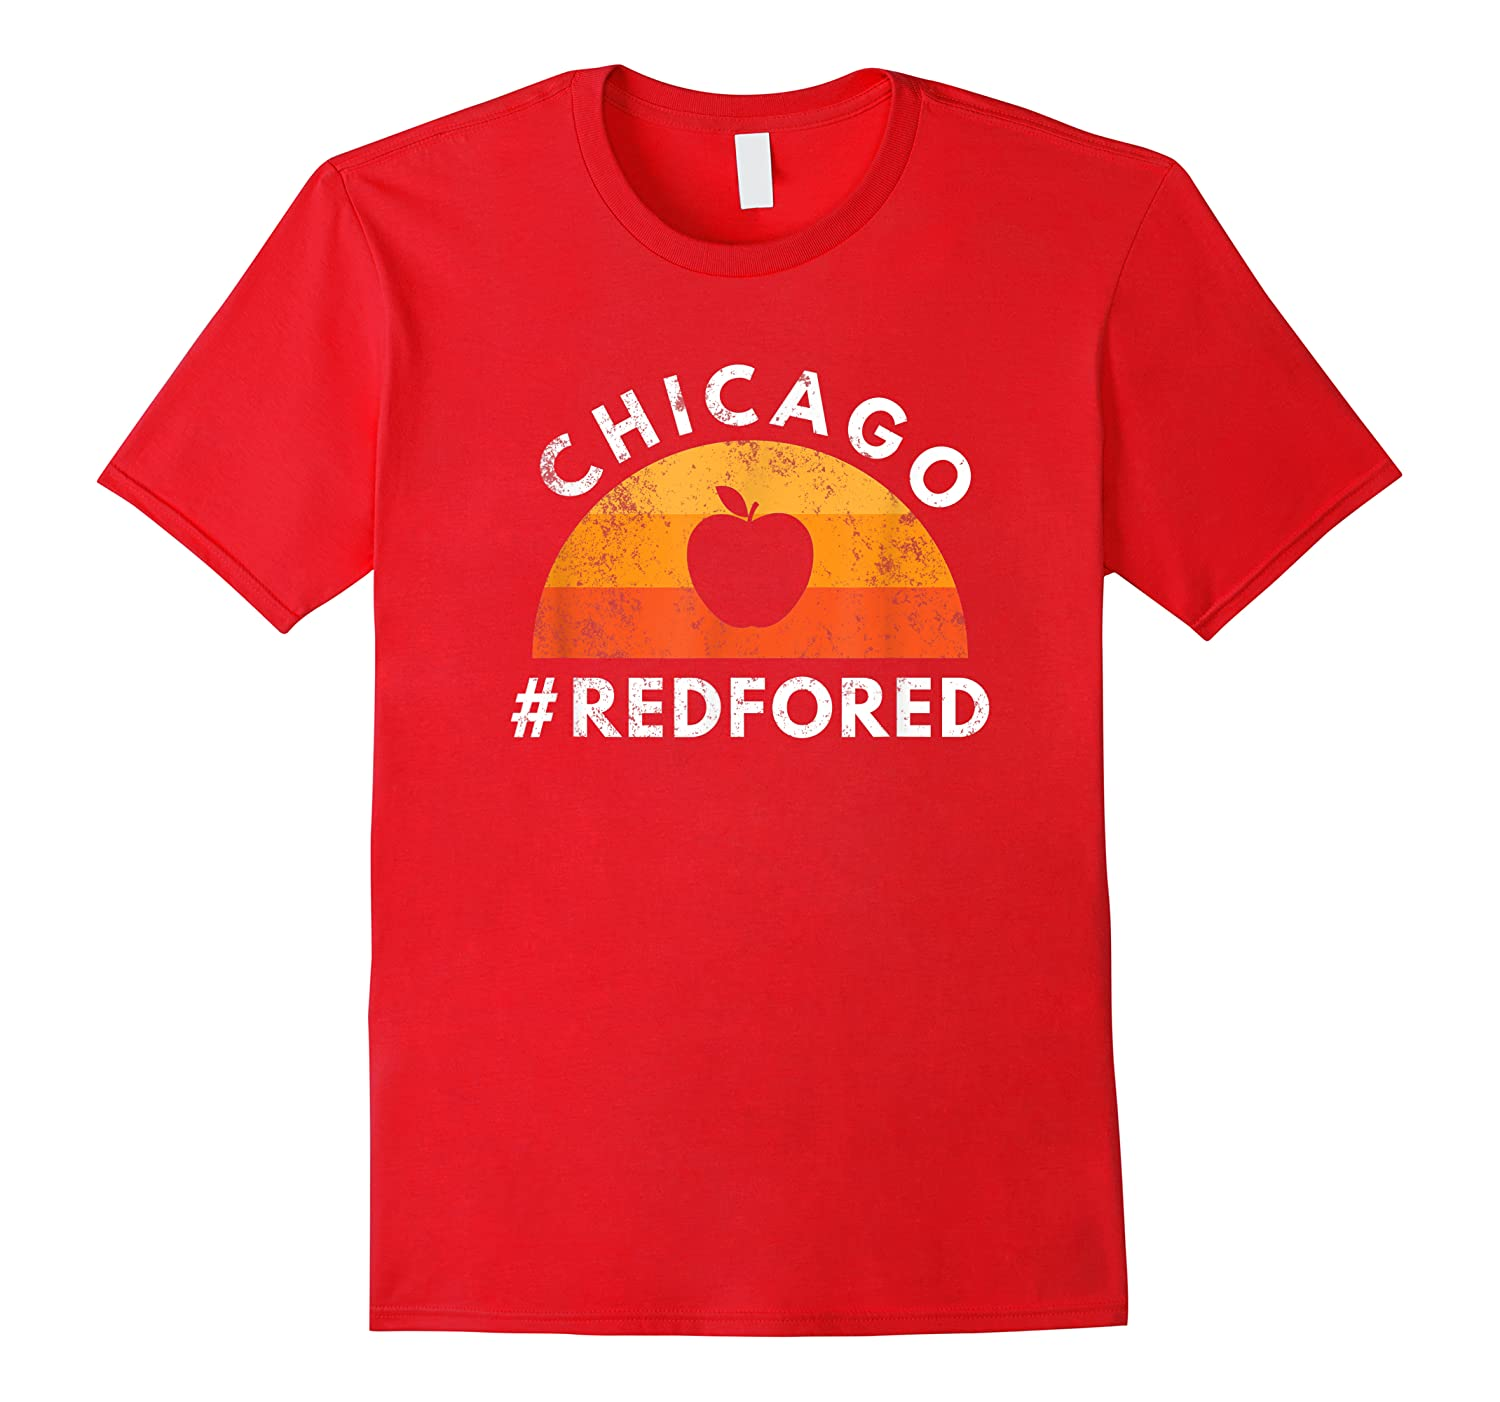 Tea Red For Ed Chicago Public Education T-shirt